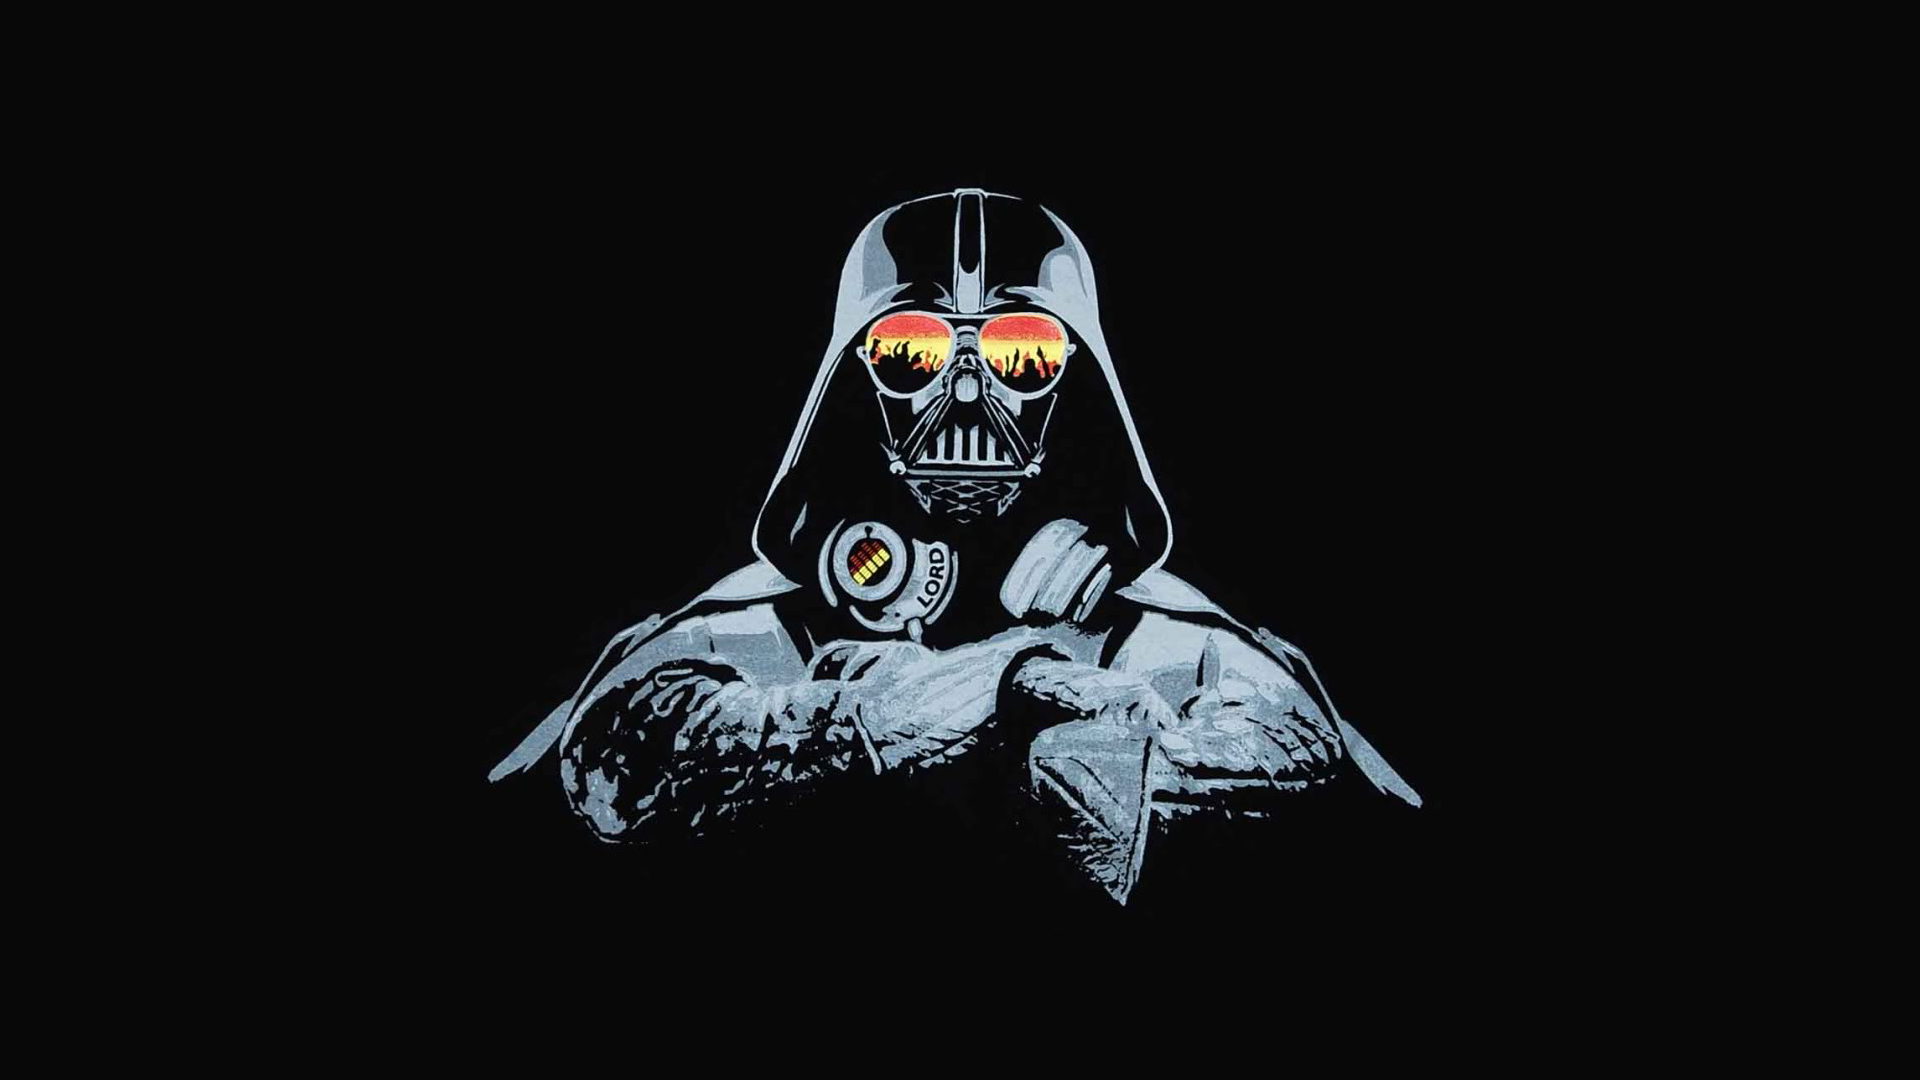 dj-darth-vader-wallpaper